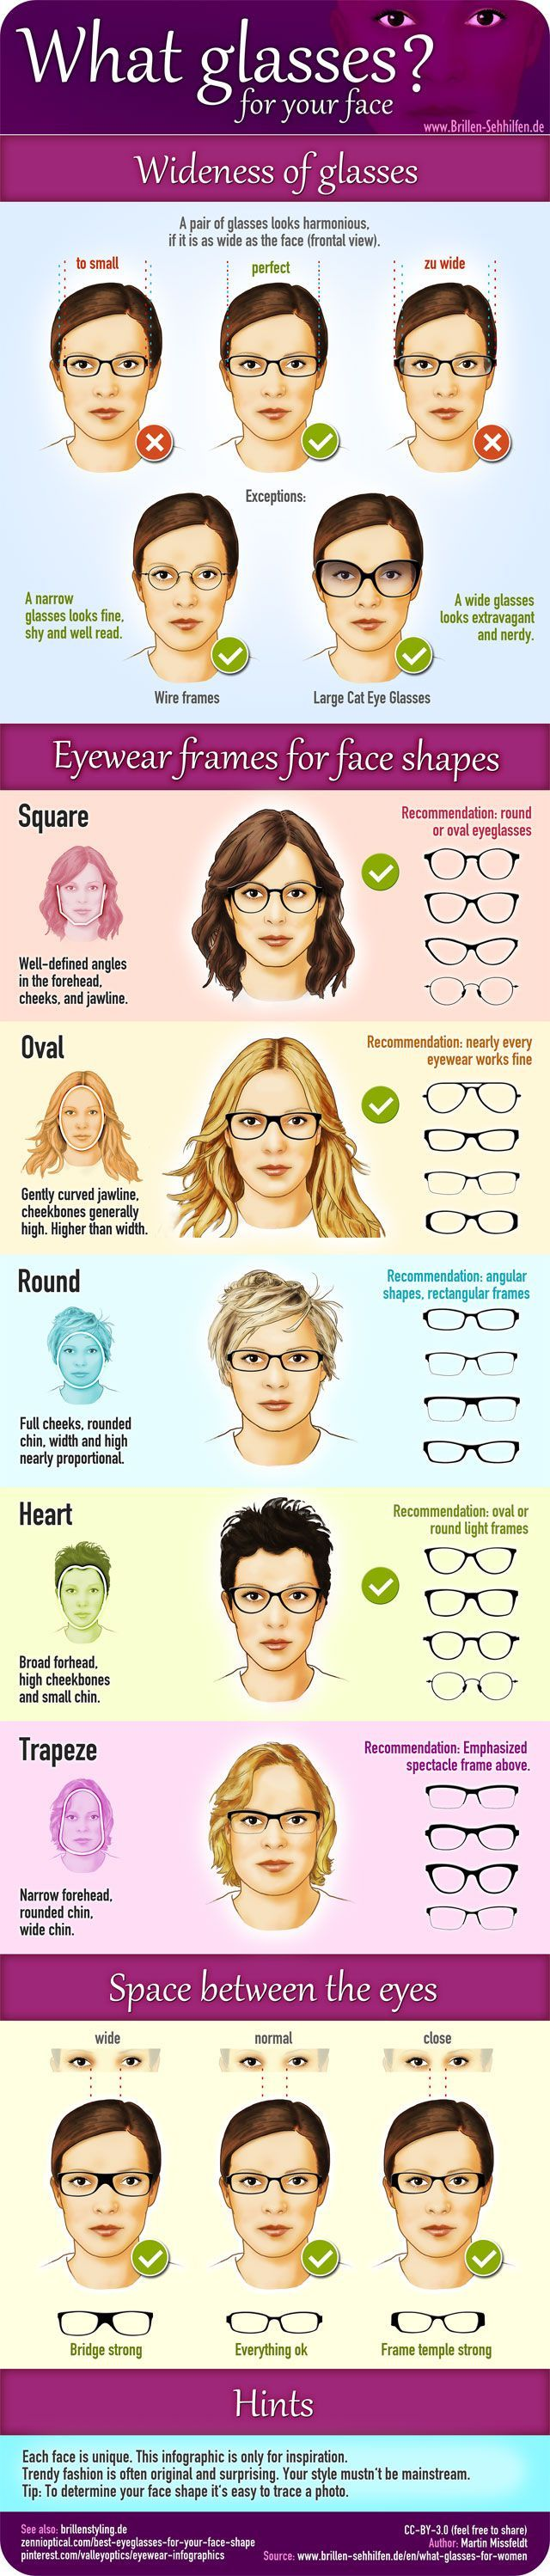 Trend Woman 50 years: Which frame of glasses for female face? #infographic #glasses #fashion #eyes